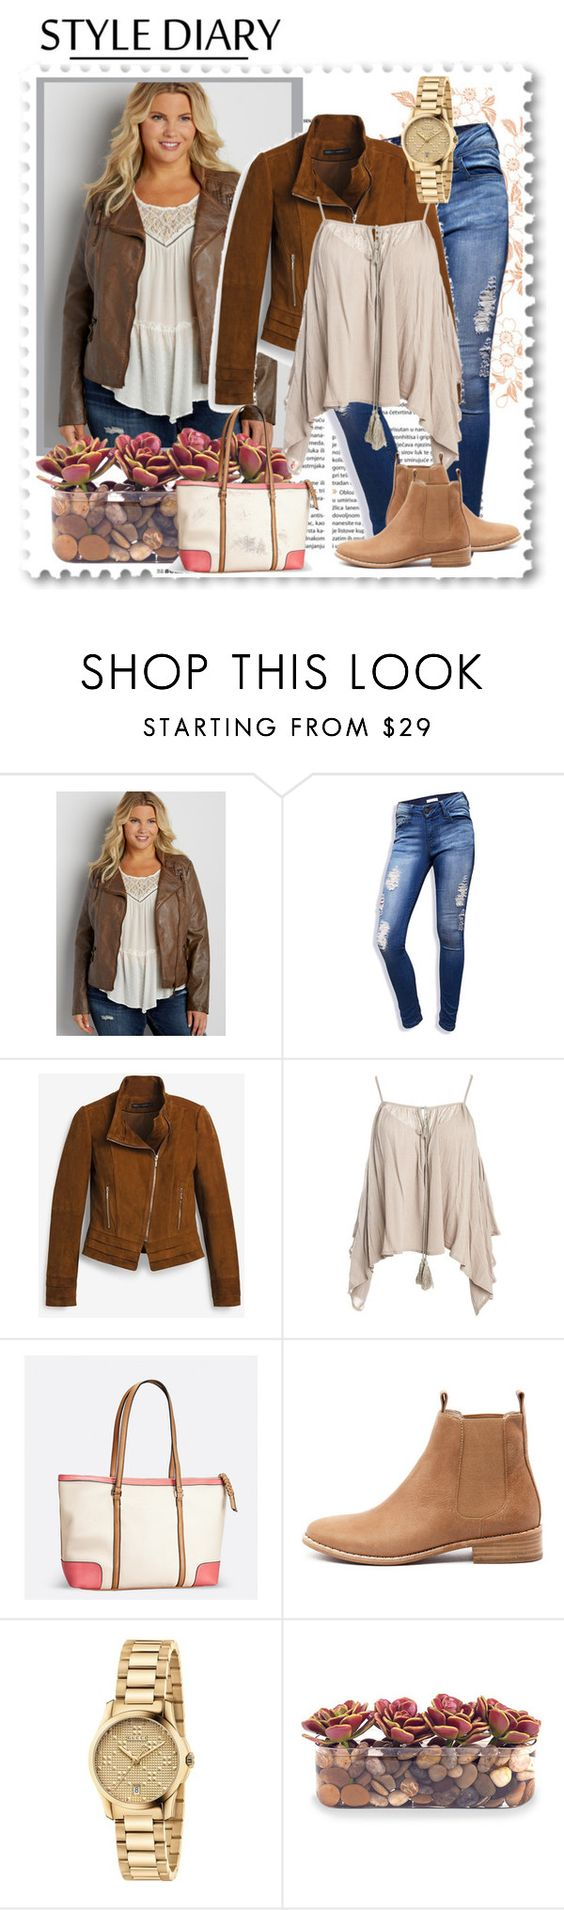 """""""Casual"""" by marta-spinto ❤ liked on Polyvore featuring maurices, Skylton, White House Black Market, Sans Souci, Avenue, Mollini, Gucci and John-Richard"""